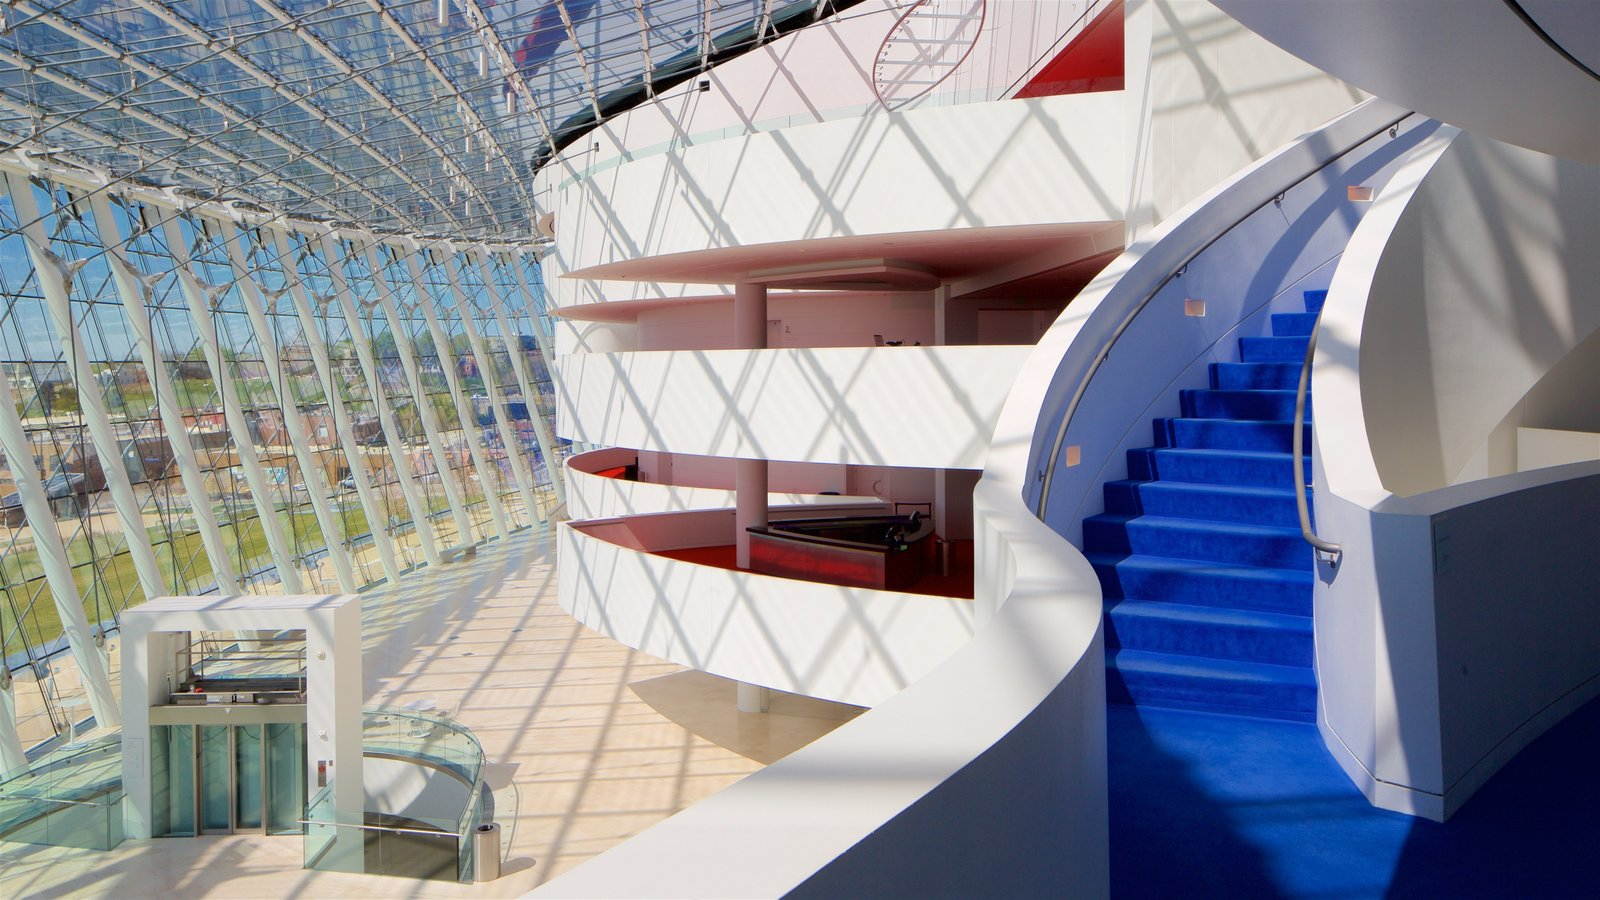 Kauffman Center for the Performing Arts showing modern architecture and interior views